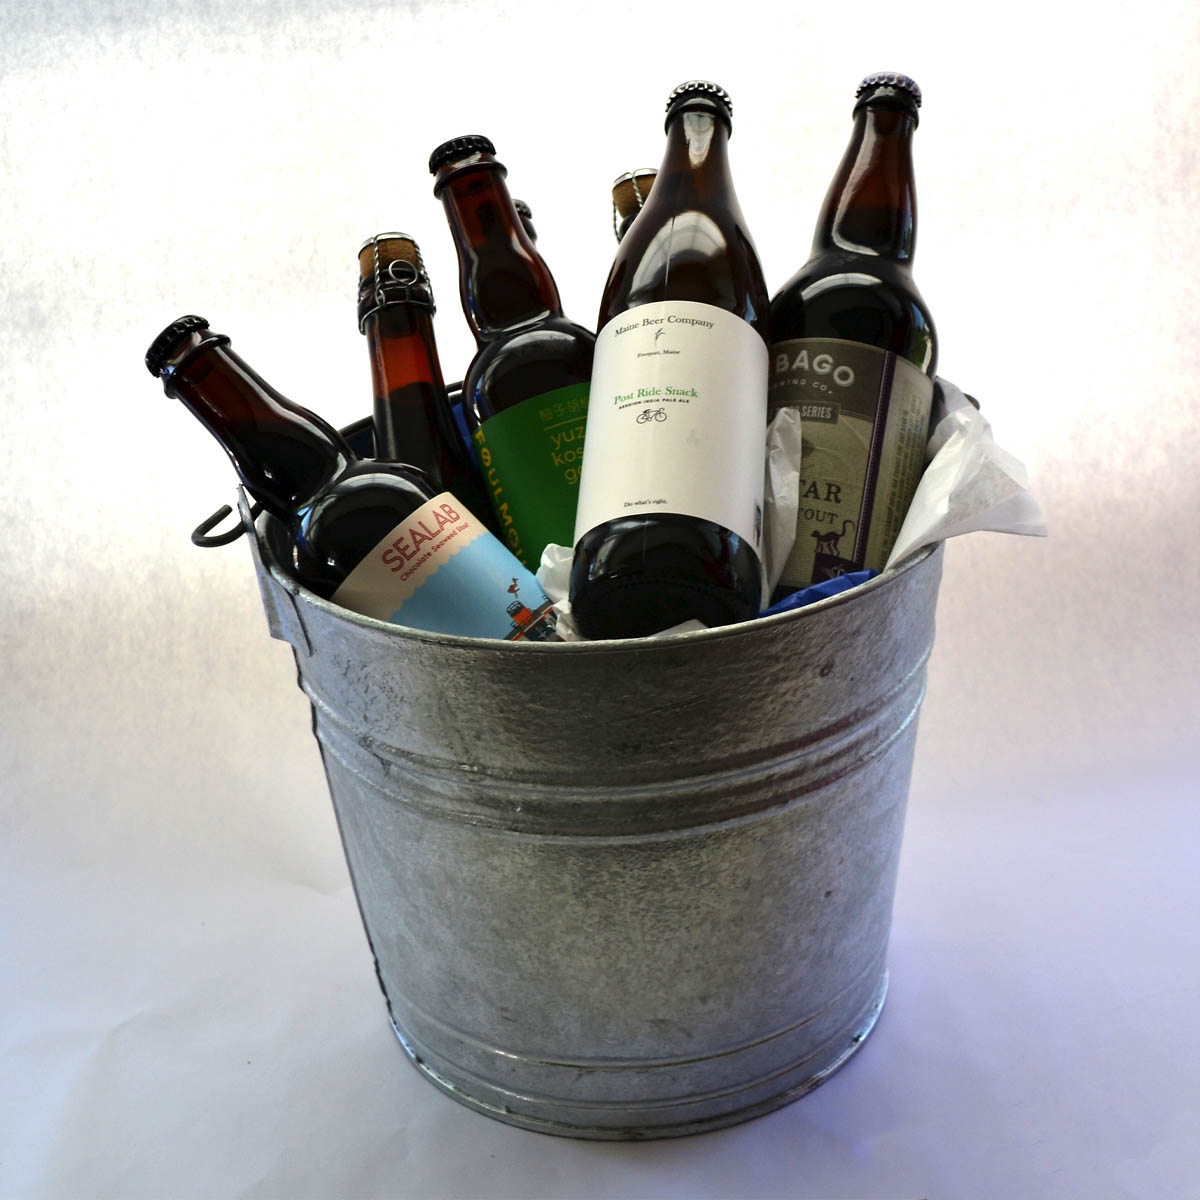 Craft Beer Bucket - The Schmidt Family has generously provided this unique bucket featuring craft brew beers from across Maine. Enjoy beer from some of the nations most award winning breweries, including Sebago, Maine Beer Company, Foulmouth, and more!